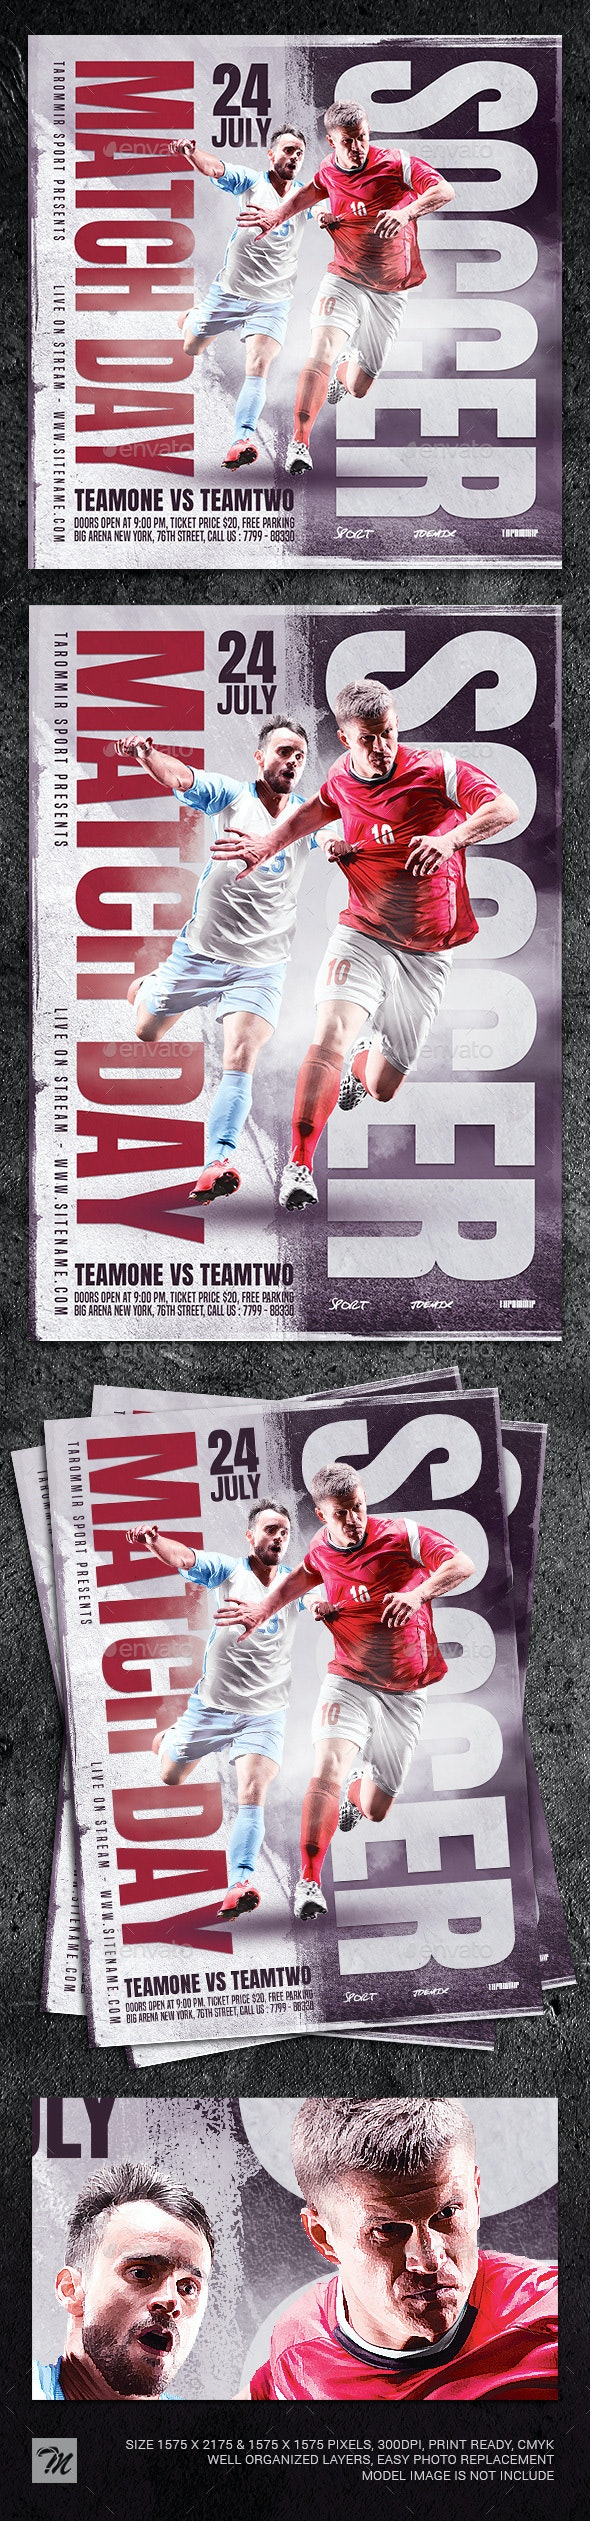 Soccer Match Day Flyer - Sports Events